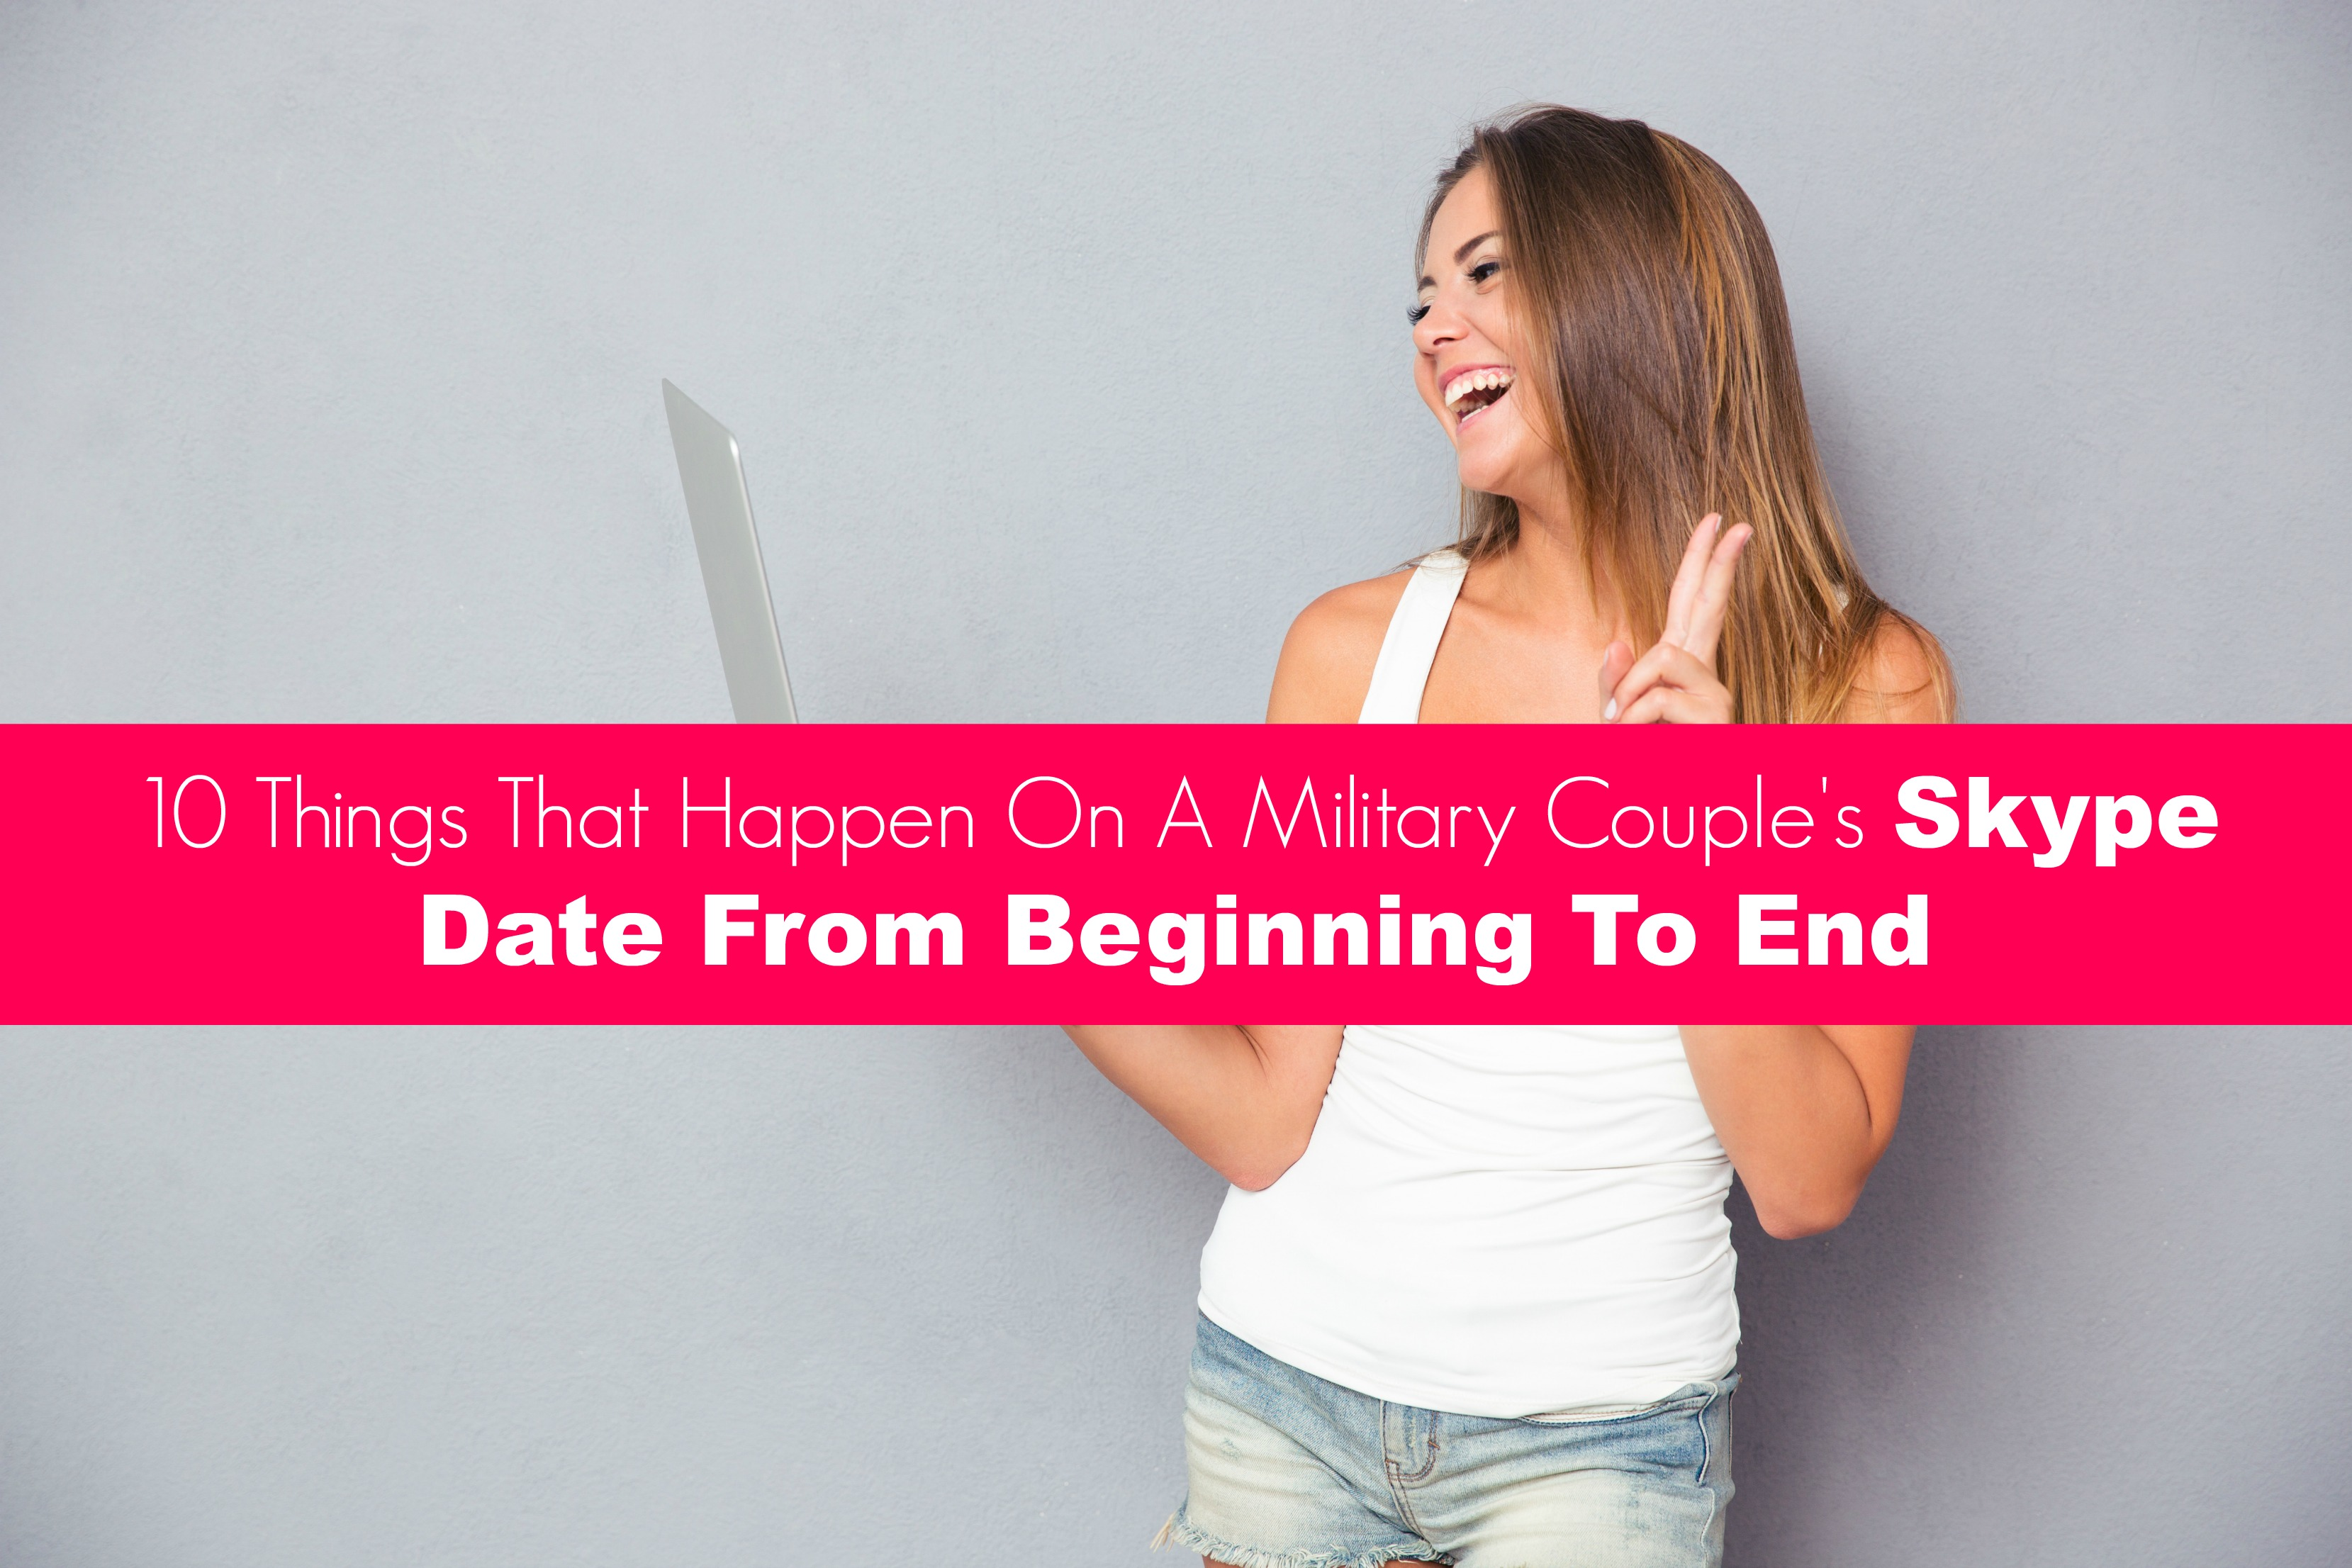 10 Things That Happen On A Military Couple's Skype Date From Beginning To End